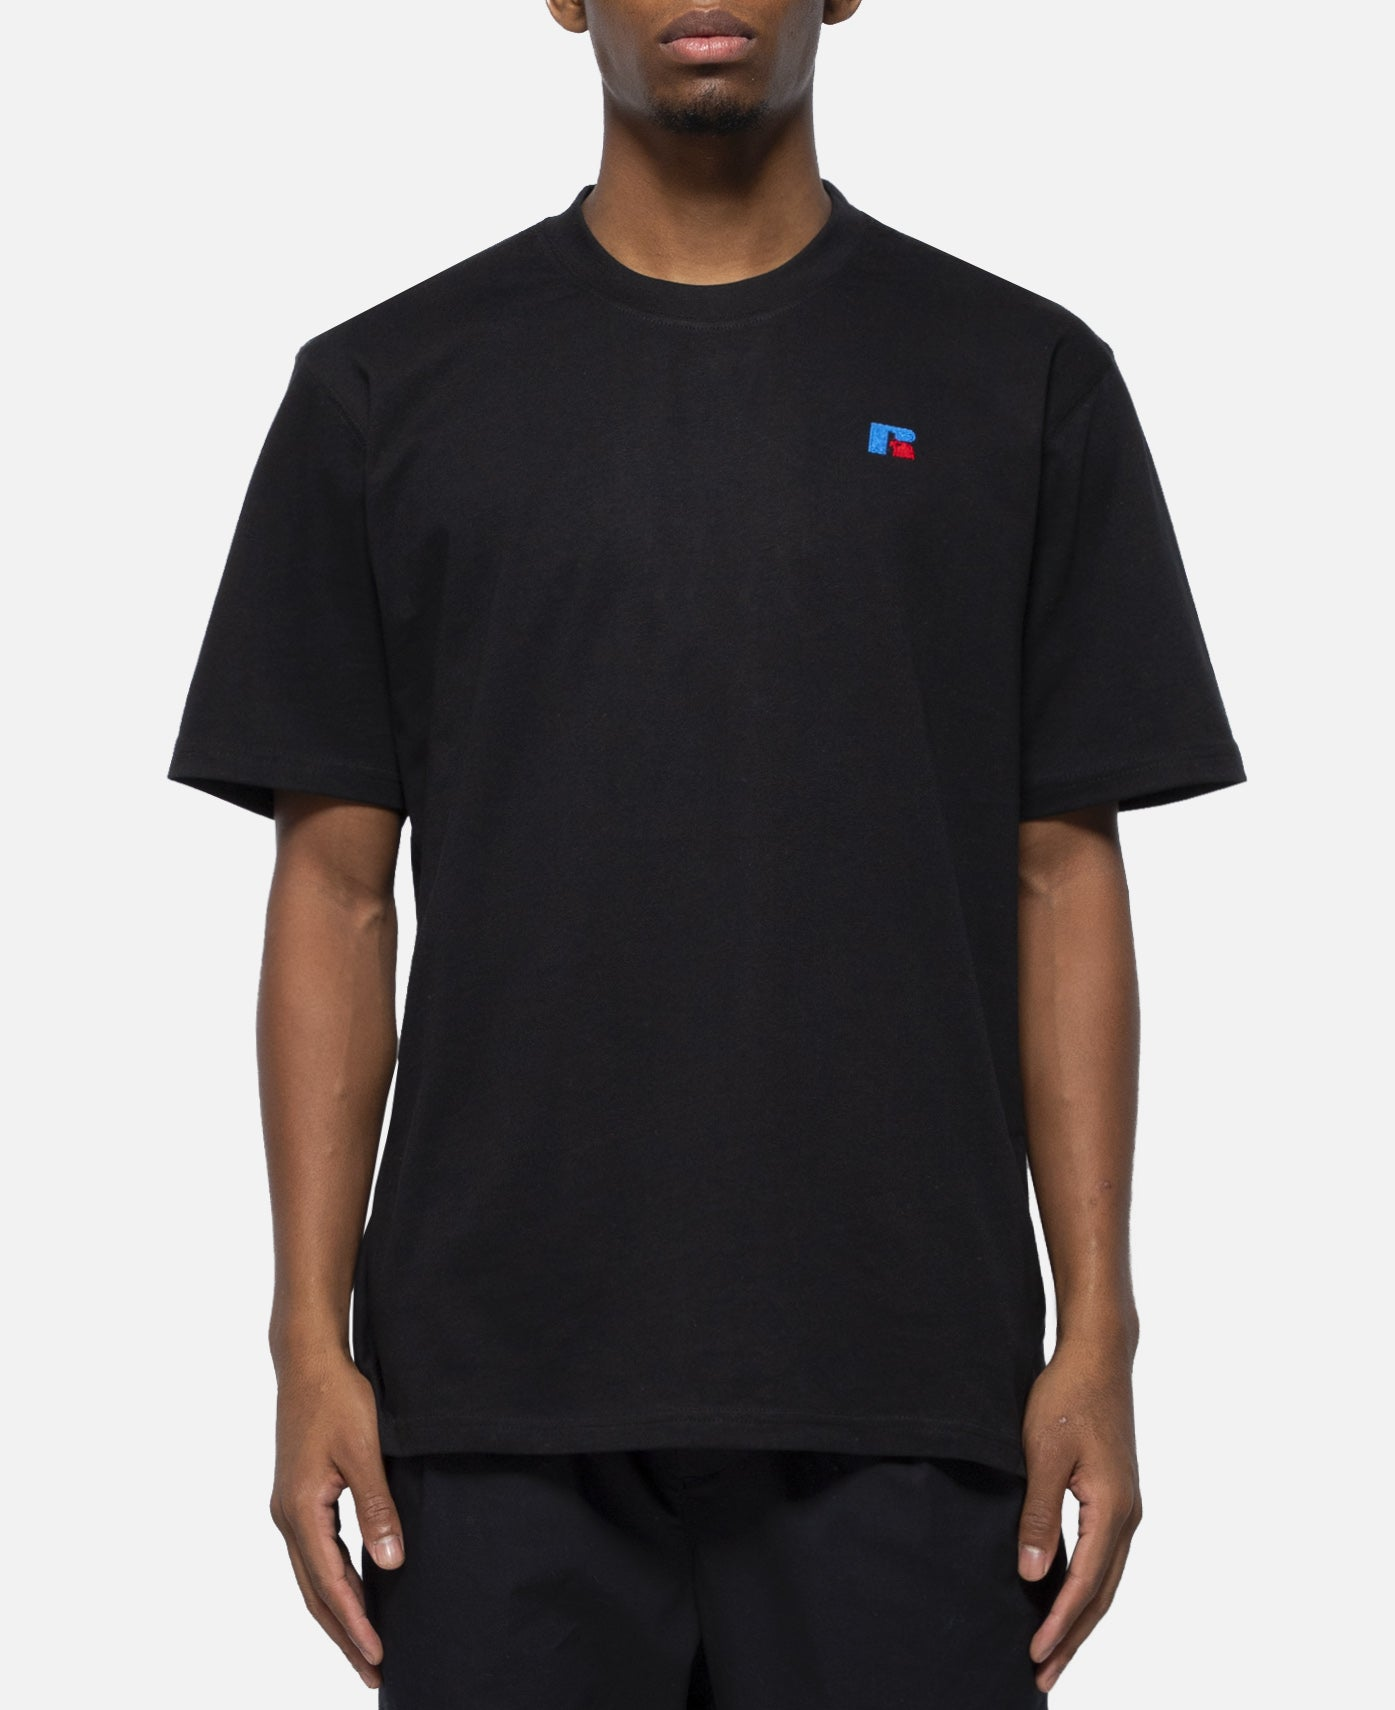 Baseliner Heavyweight T-Shirt (Black)